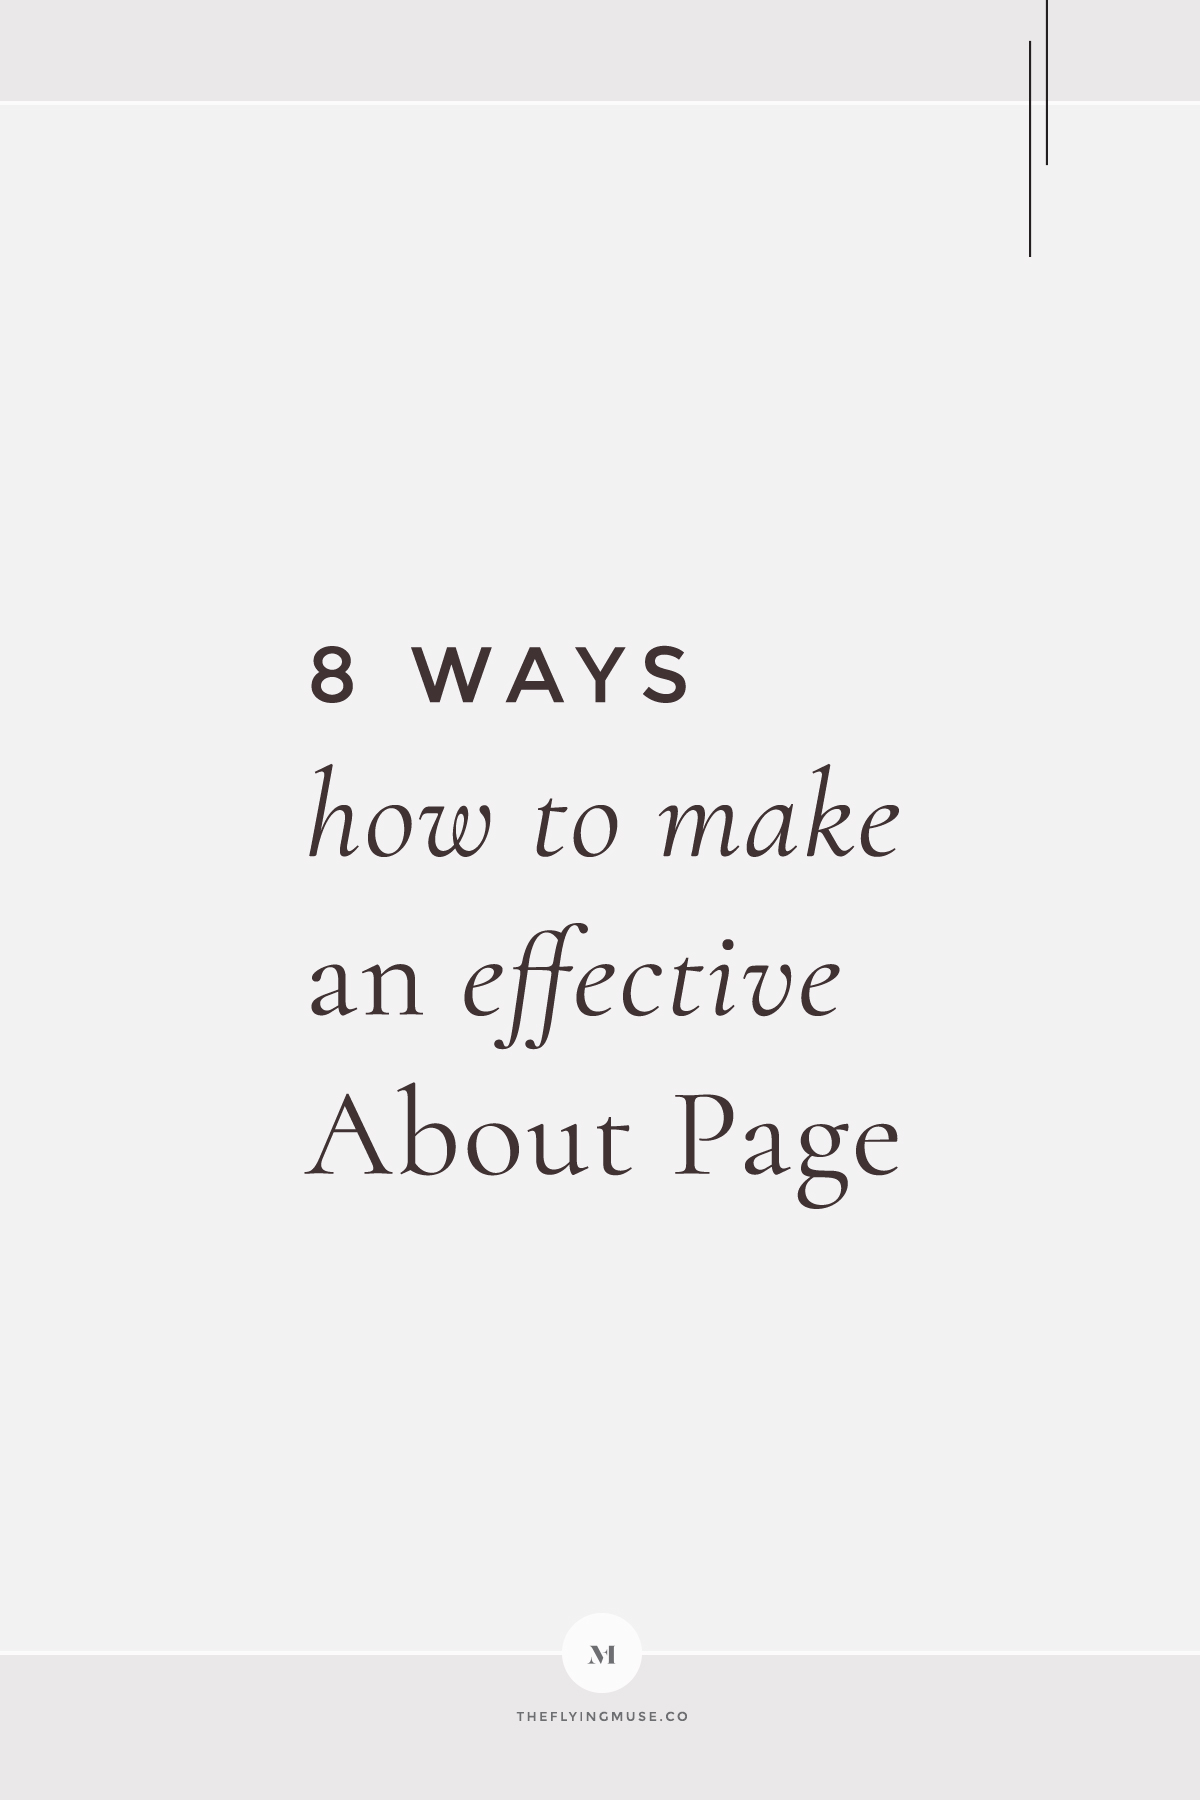 Ways How to make an Effective About Page